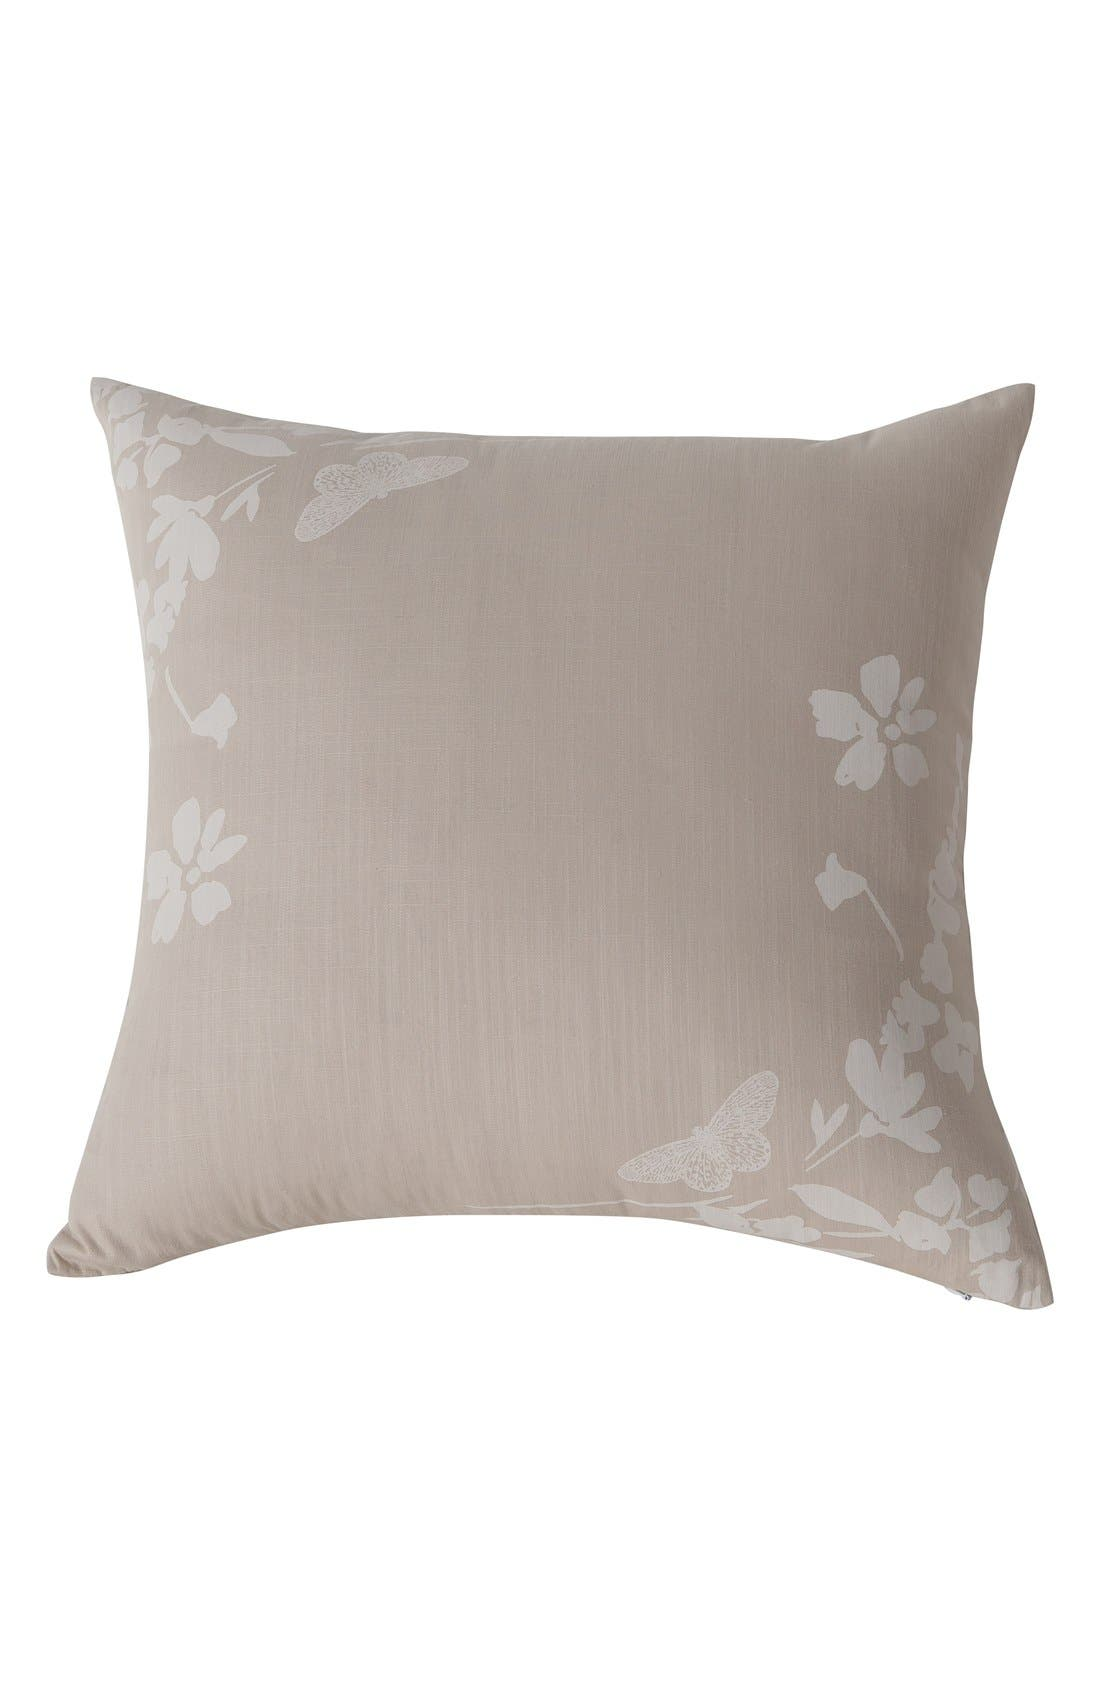 'Laramie' Accent Pillow,                         Main,                         color, 250